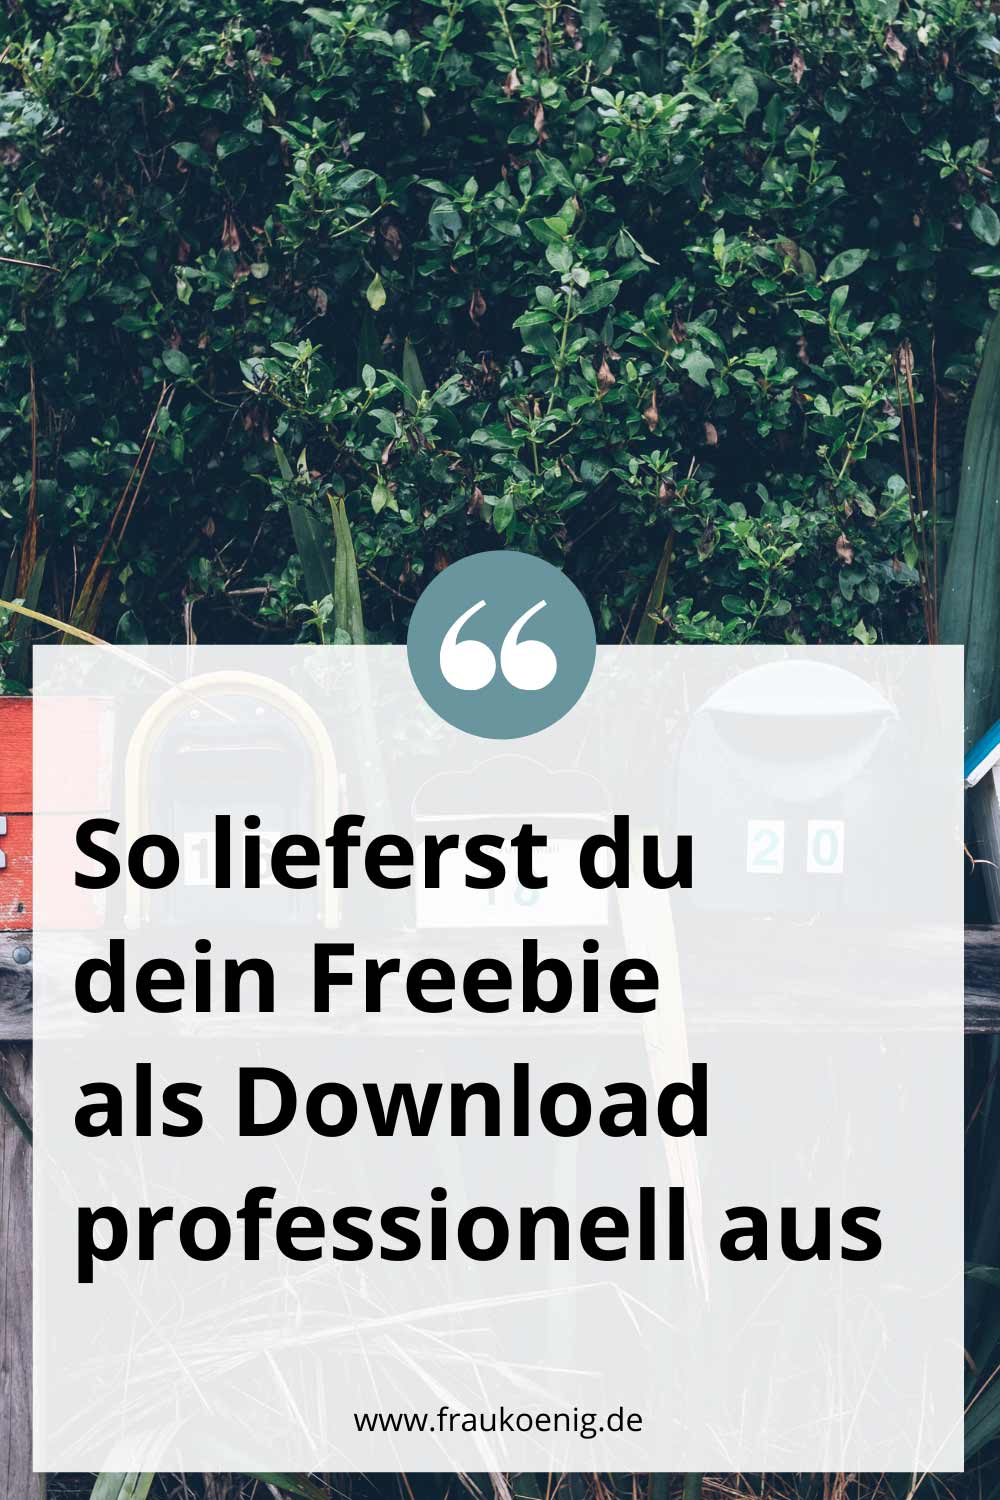 So lieferst du dein Freebie als Download professionell aus